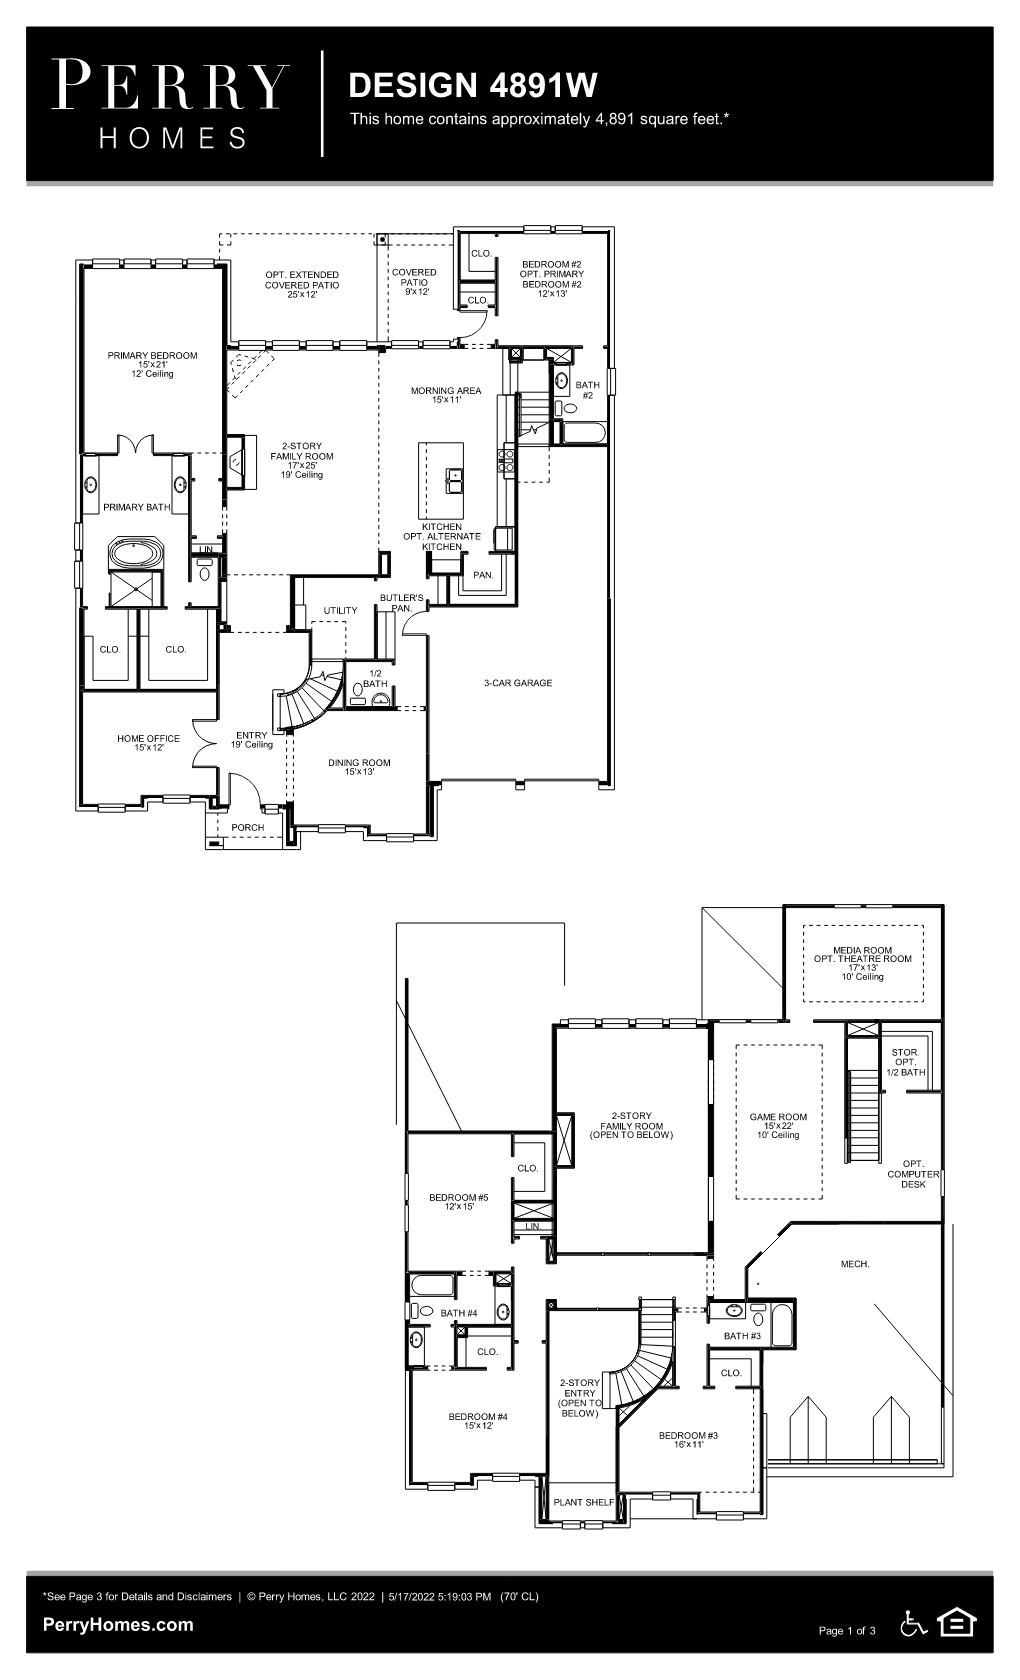 Floor Plan for 4891W